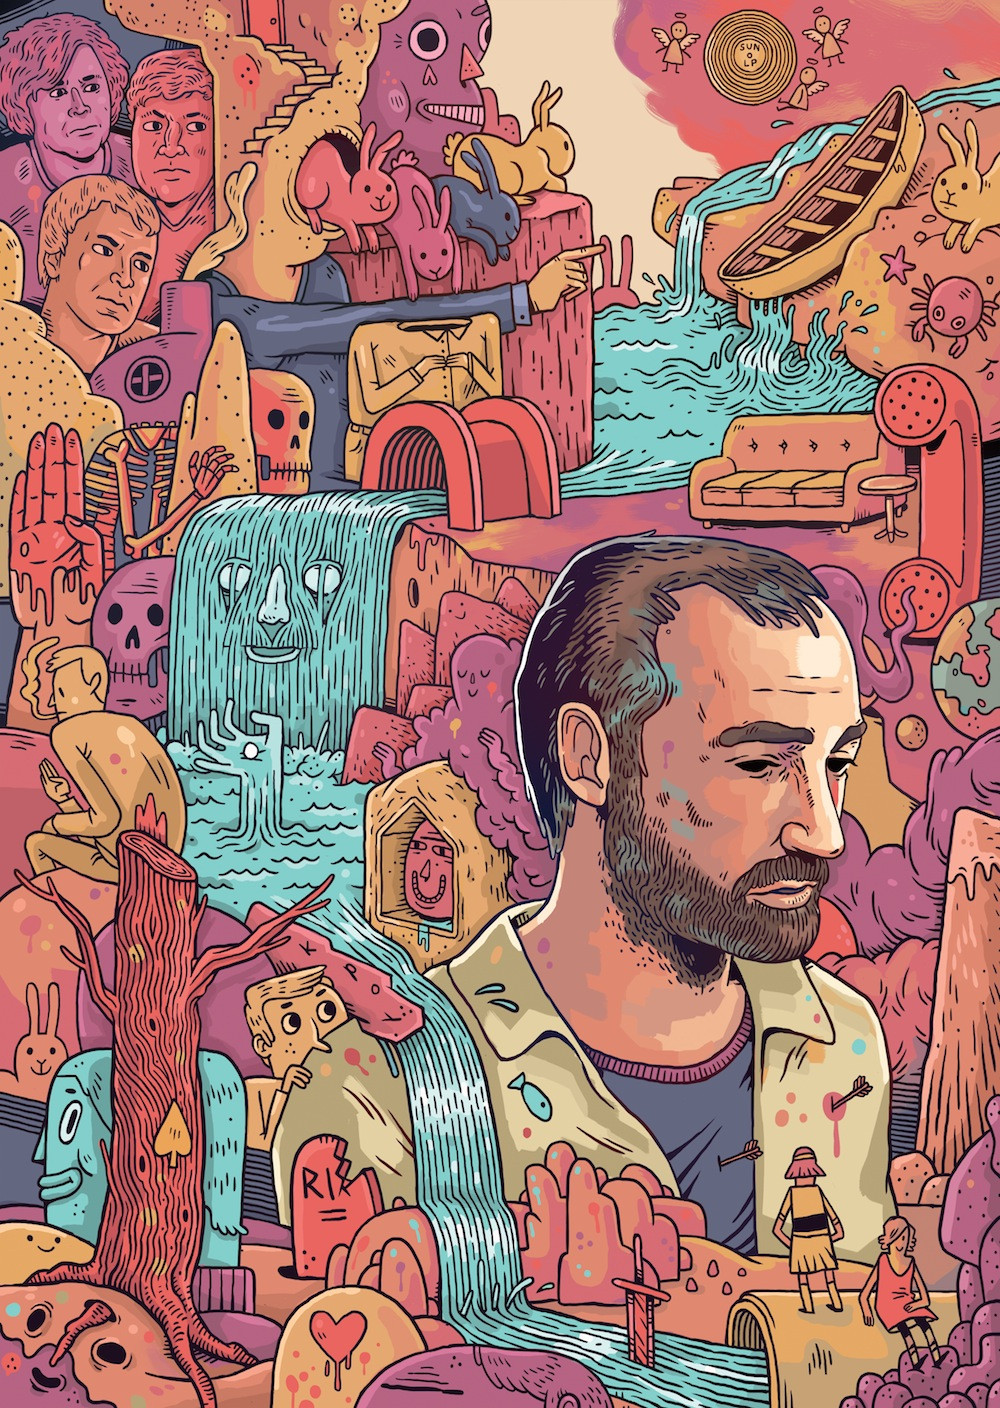 Portrait of James Mercer (The Shins) for 'Port of Morrow' Review